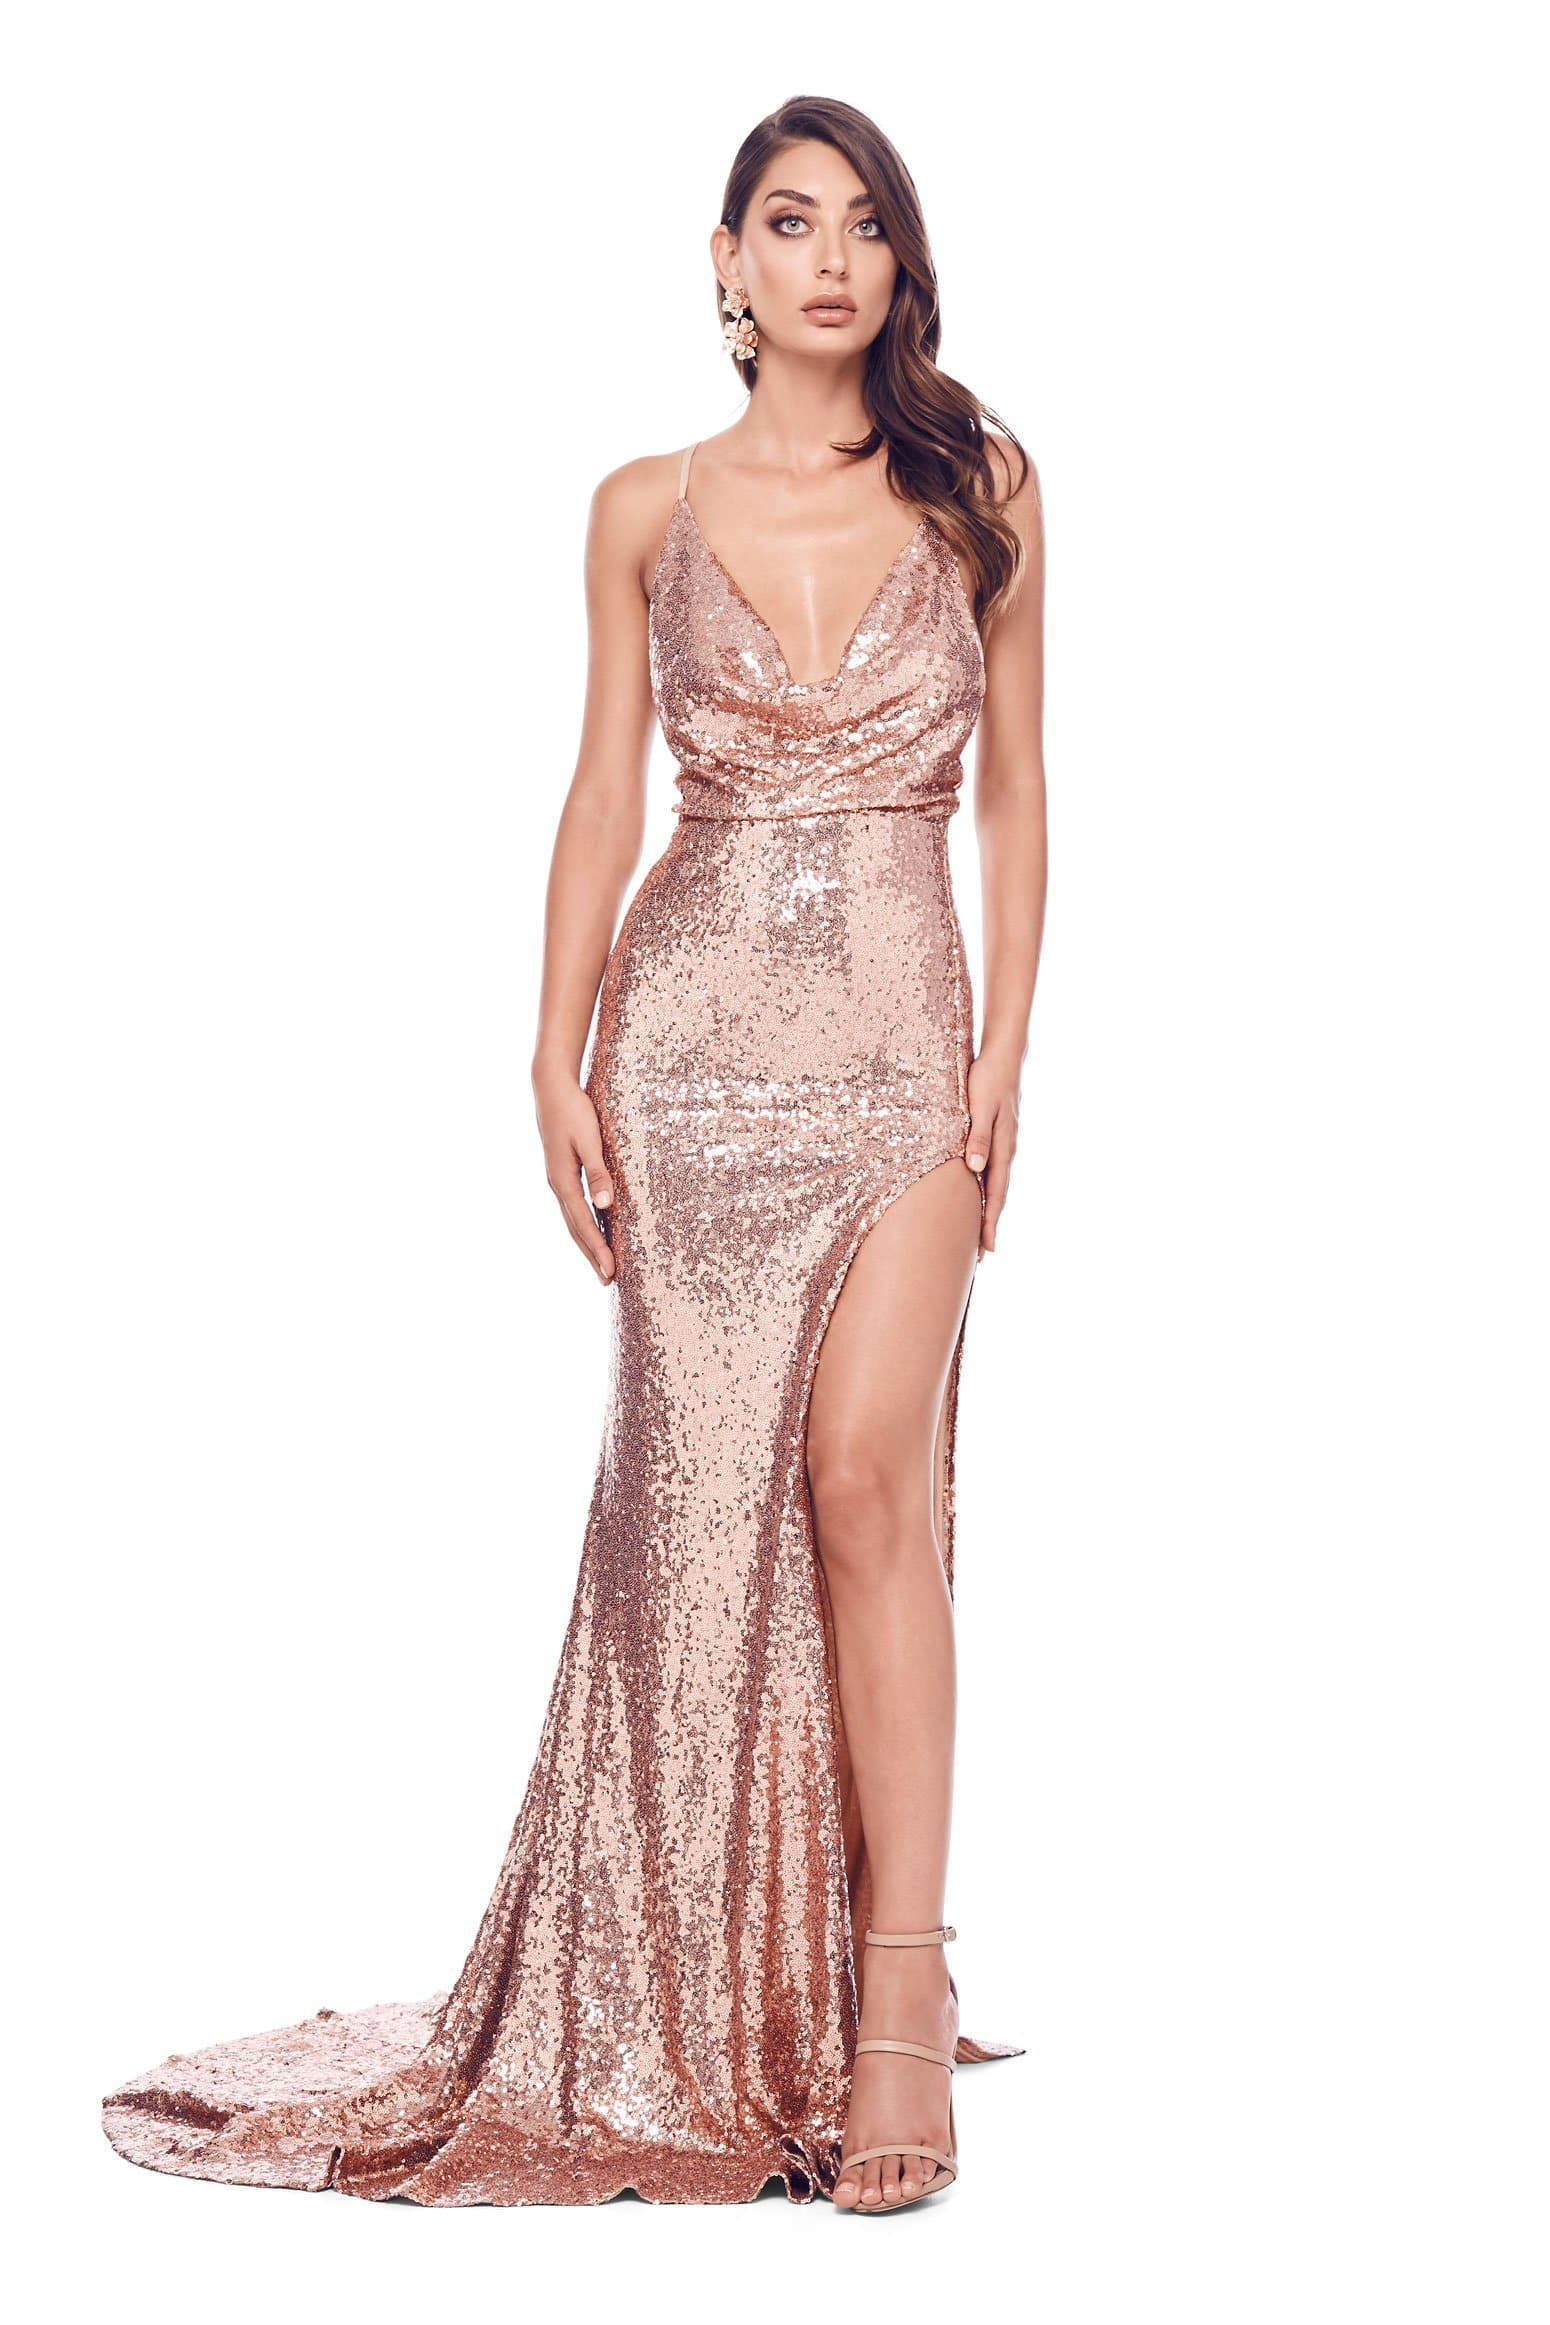 e5f3f4b9e15e9 Andriana - Rose Gold Sequin Gown with Side Slit   Cowl Neckline ...